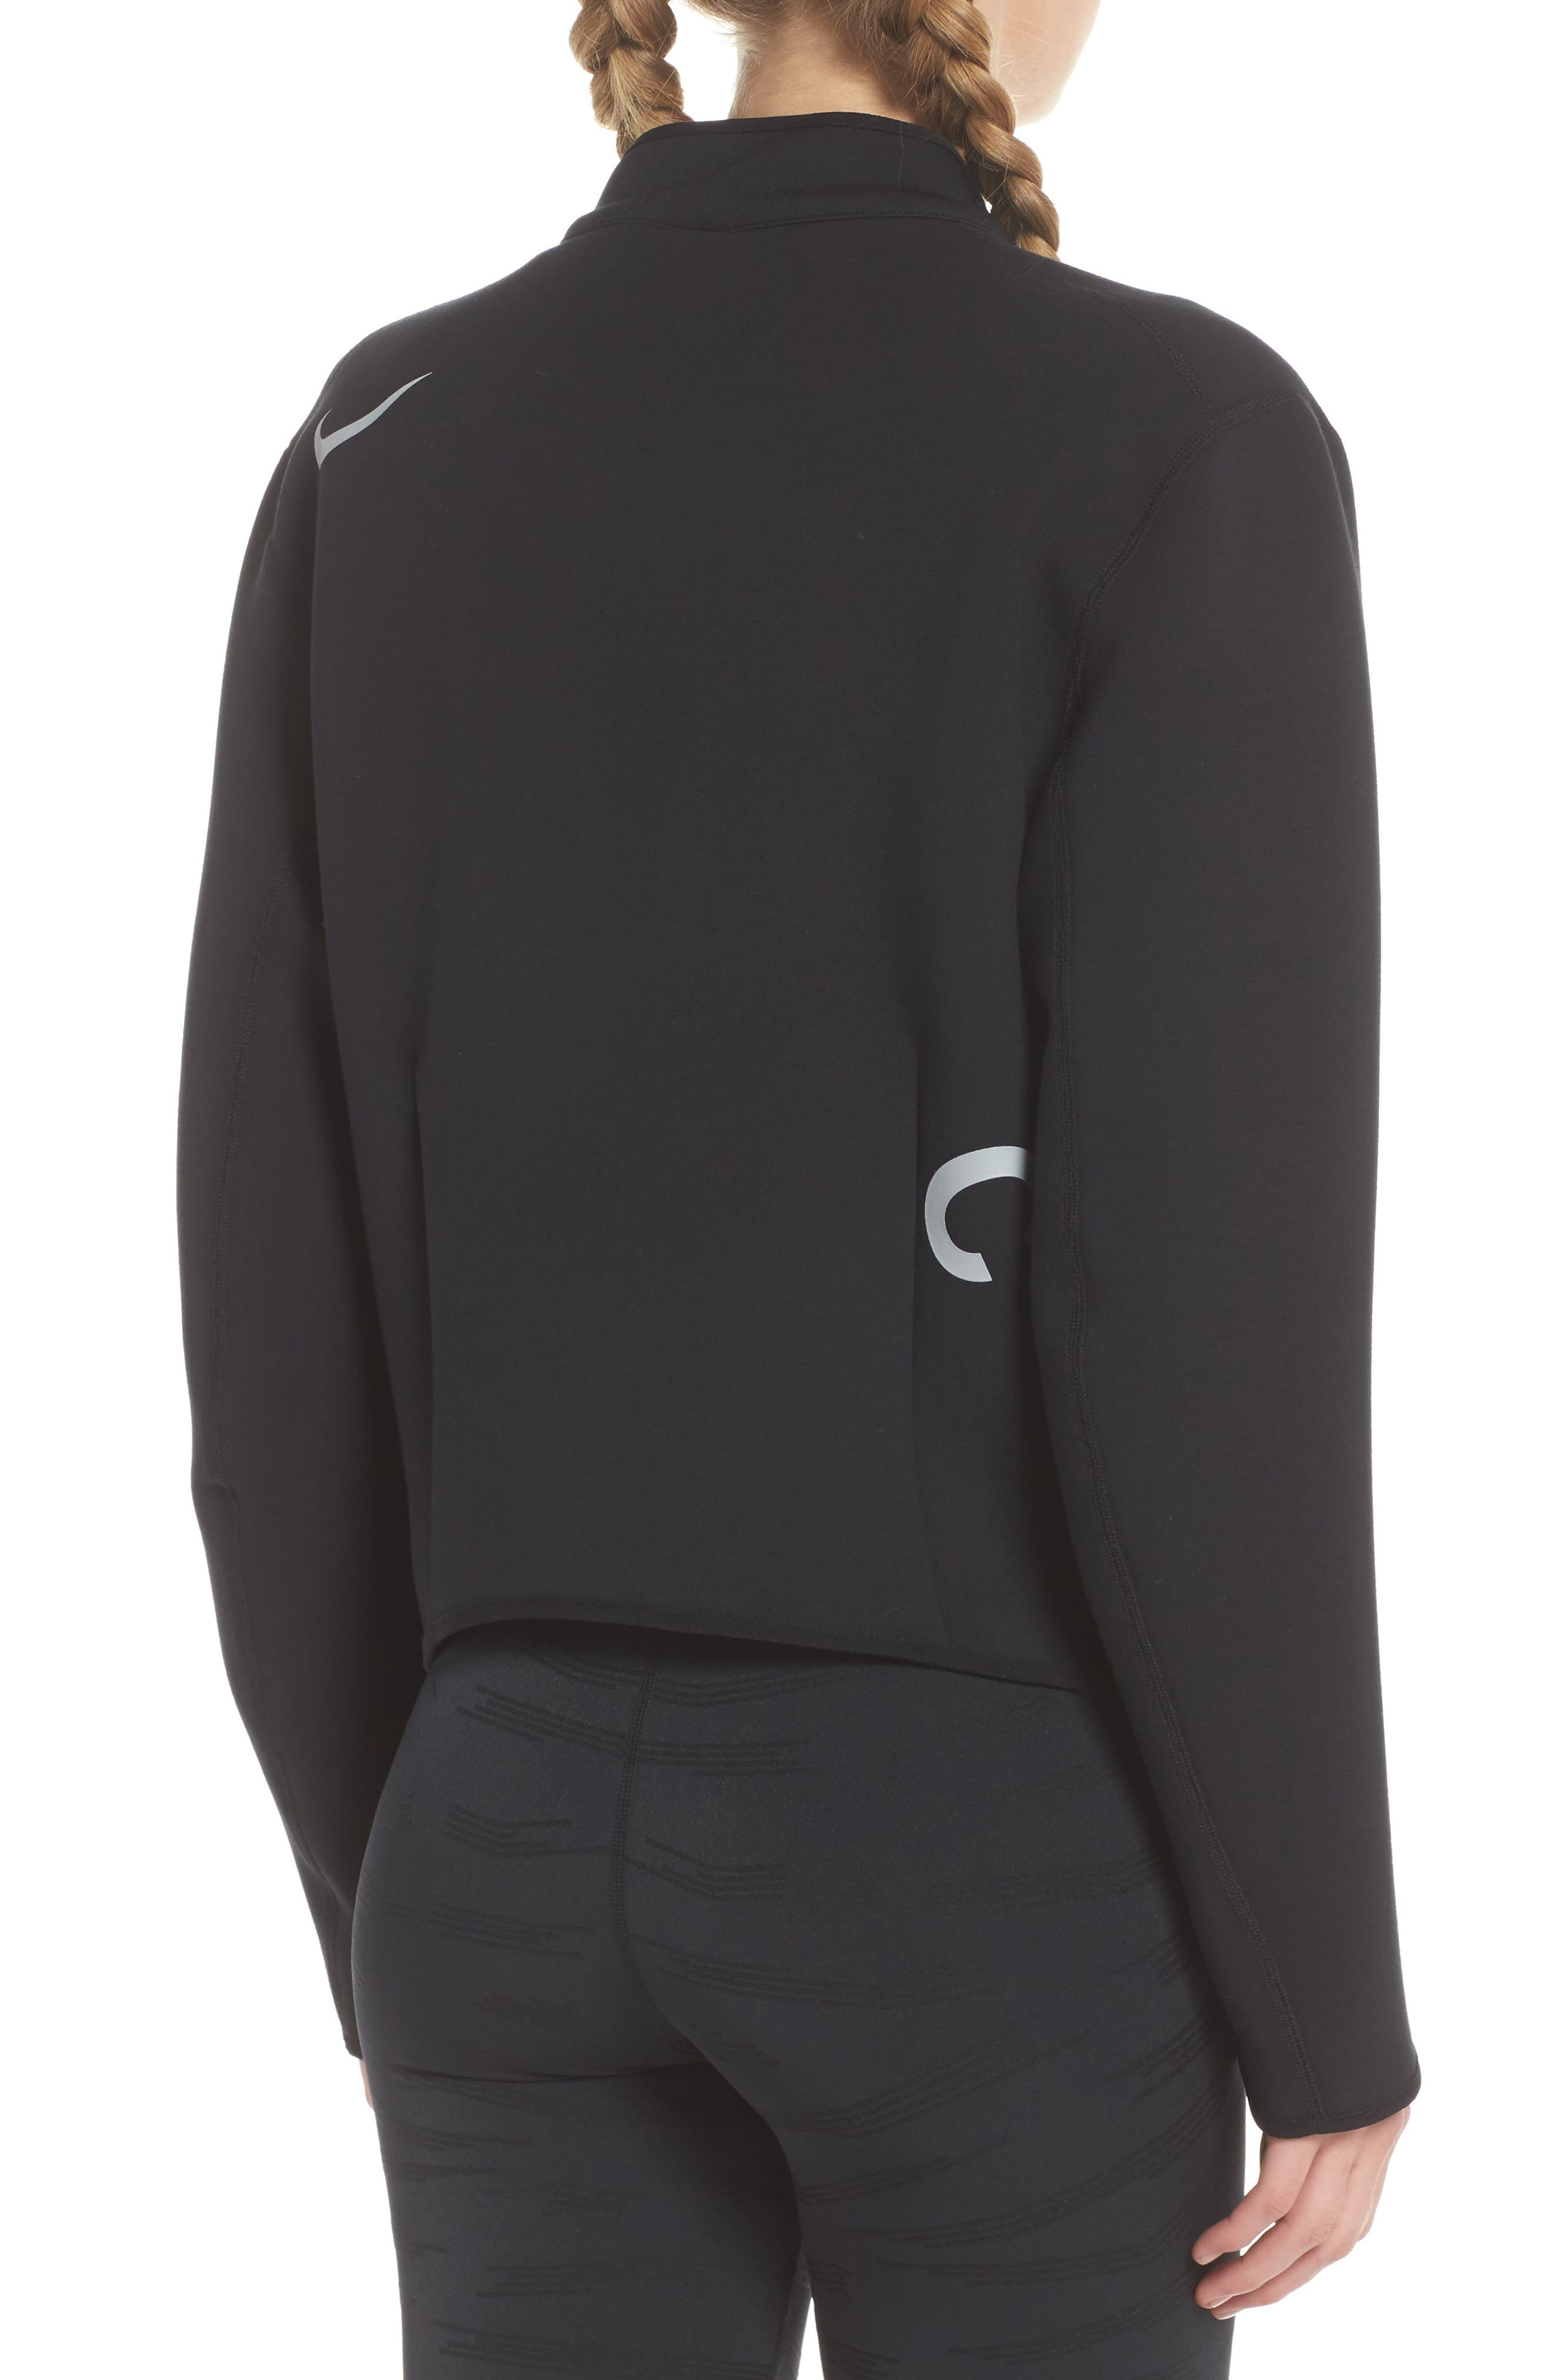 NikeLab ACG Fleece Women's Crewneck Top,                             Alternate thumbnail 2, color,                             010